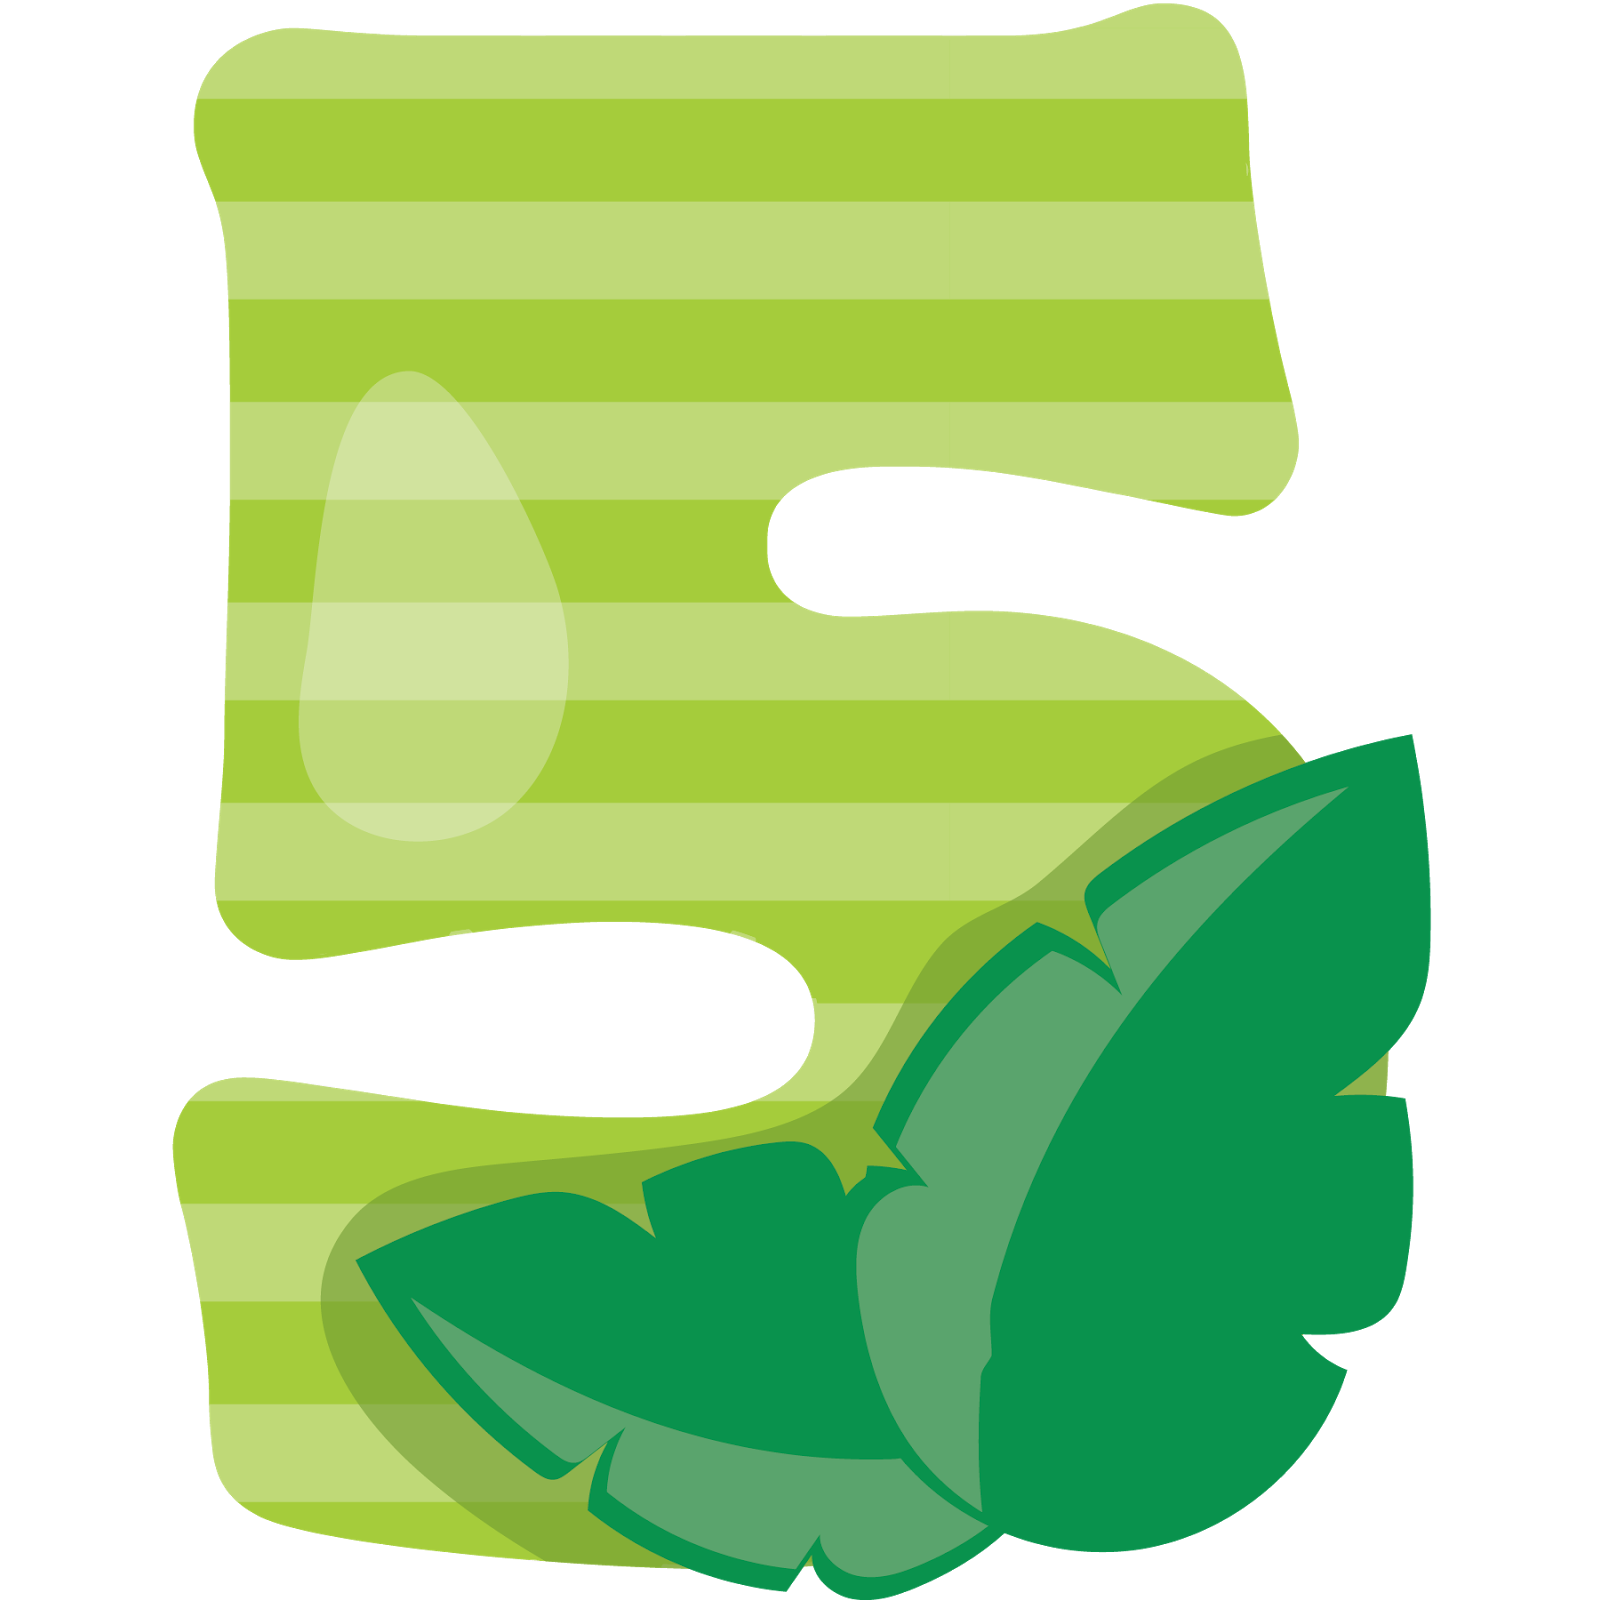 Leftover turkey clipart svg library November 2017 - HAPPINESS IS WATERMELON SHAPED! svg library